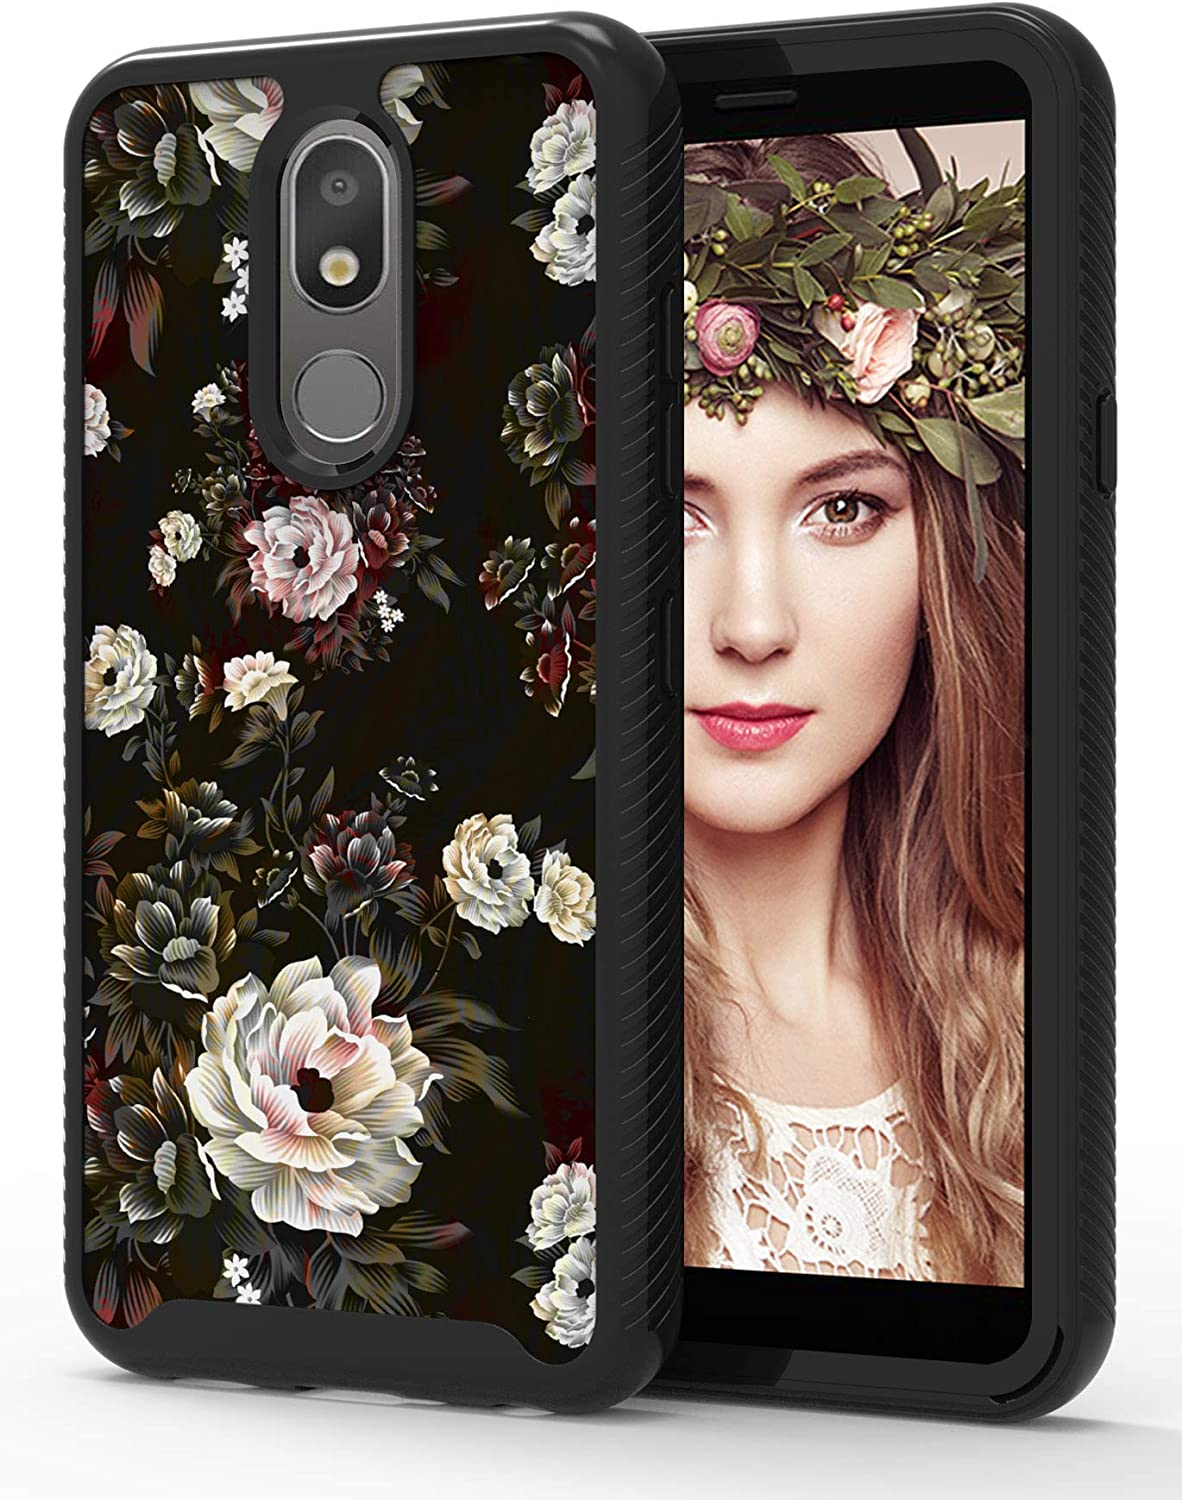 ShinyMax LG Aristo 4 Plus Case with Rose Design,LG Aristo 4/K30 2019/Escape Plus Case,Hybrid Triple Layer Armor Protective Cover Sturdy Anti-Scratch Shockproof Case for Women and Girls-Flowers/Black